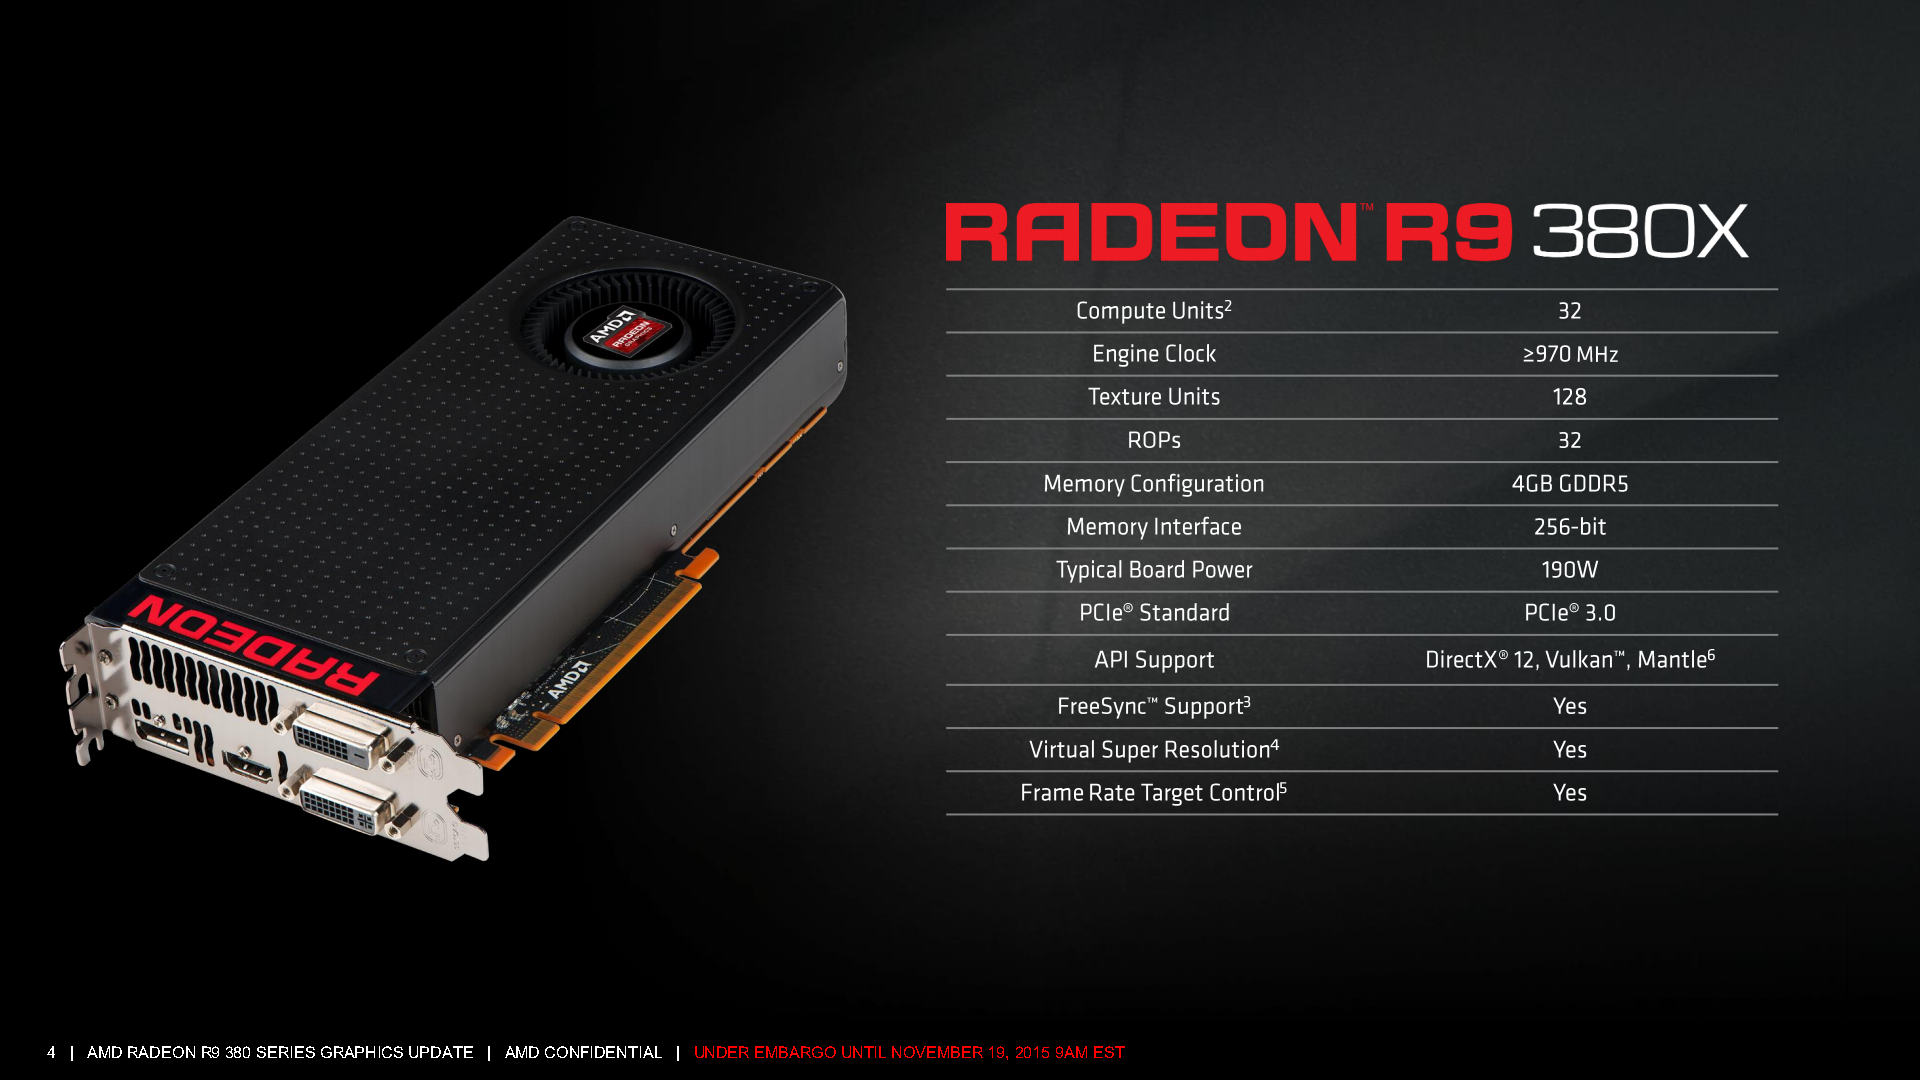 AMD Radeon R9 380X Officially Launched at $229 US - Antigua